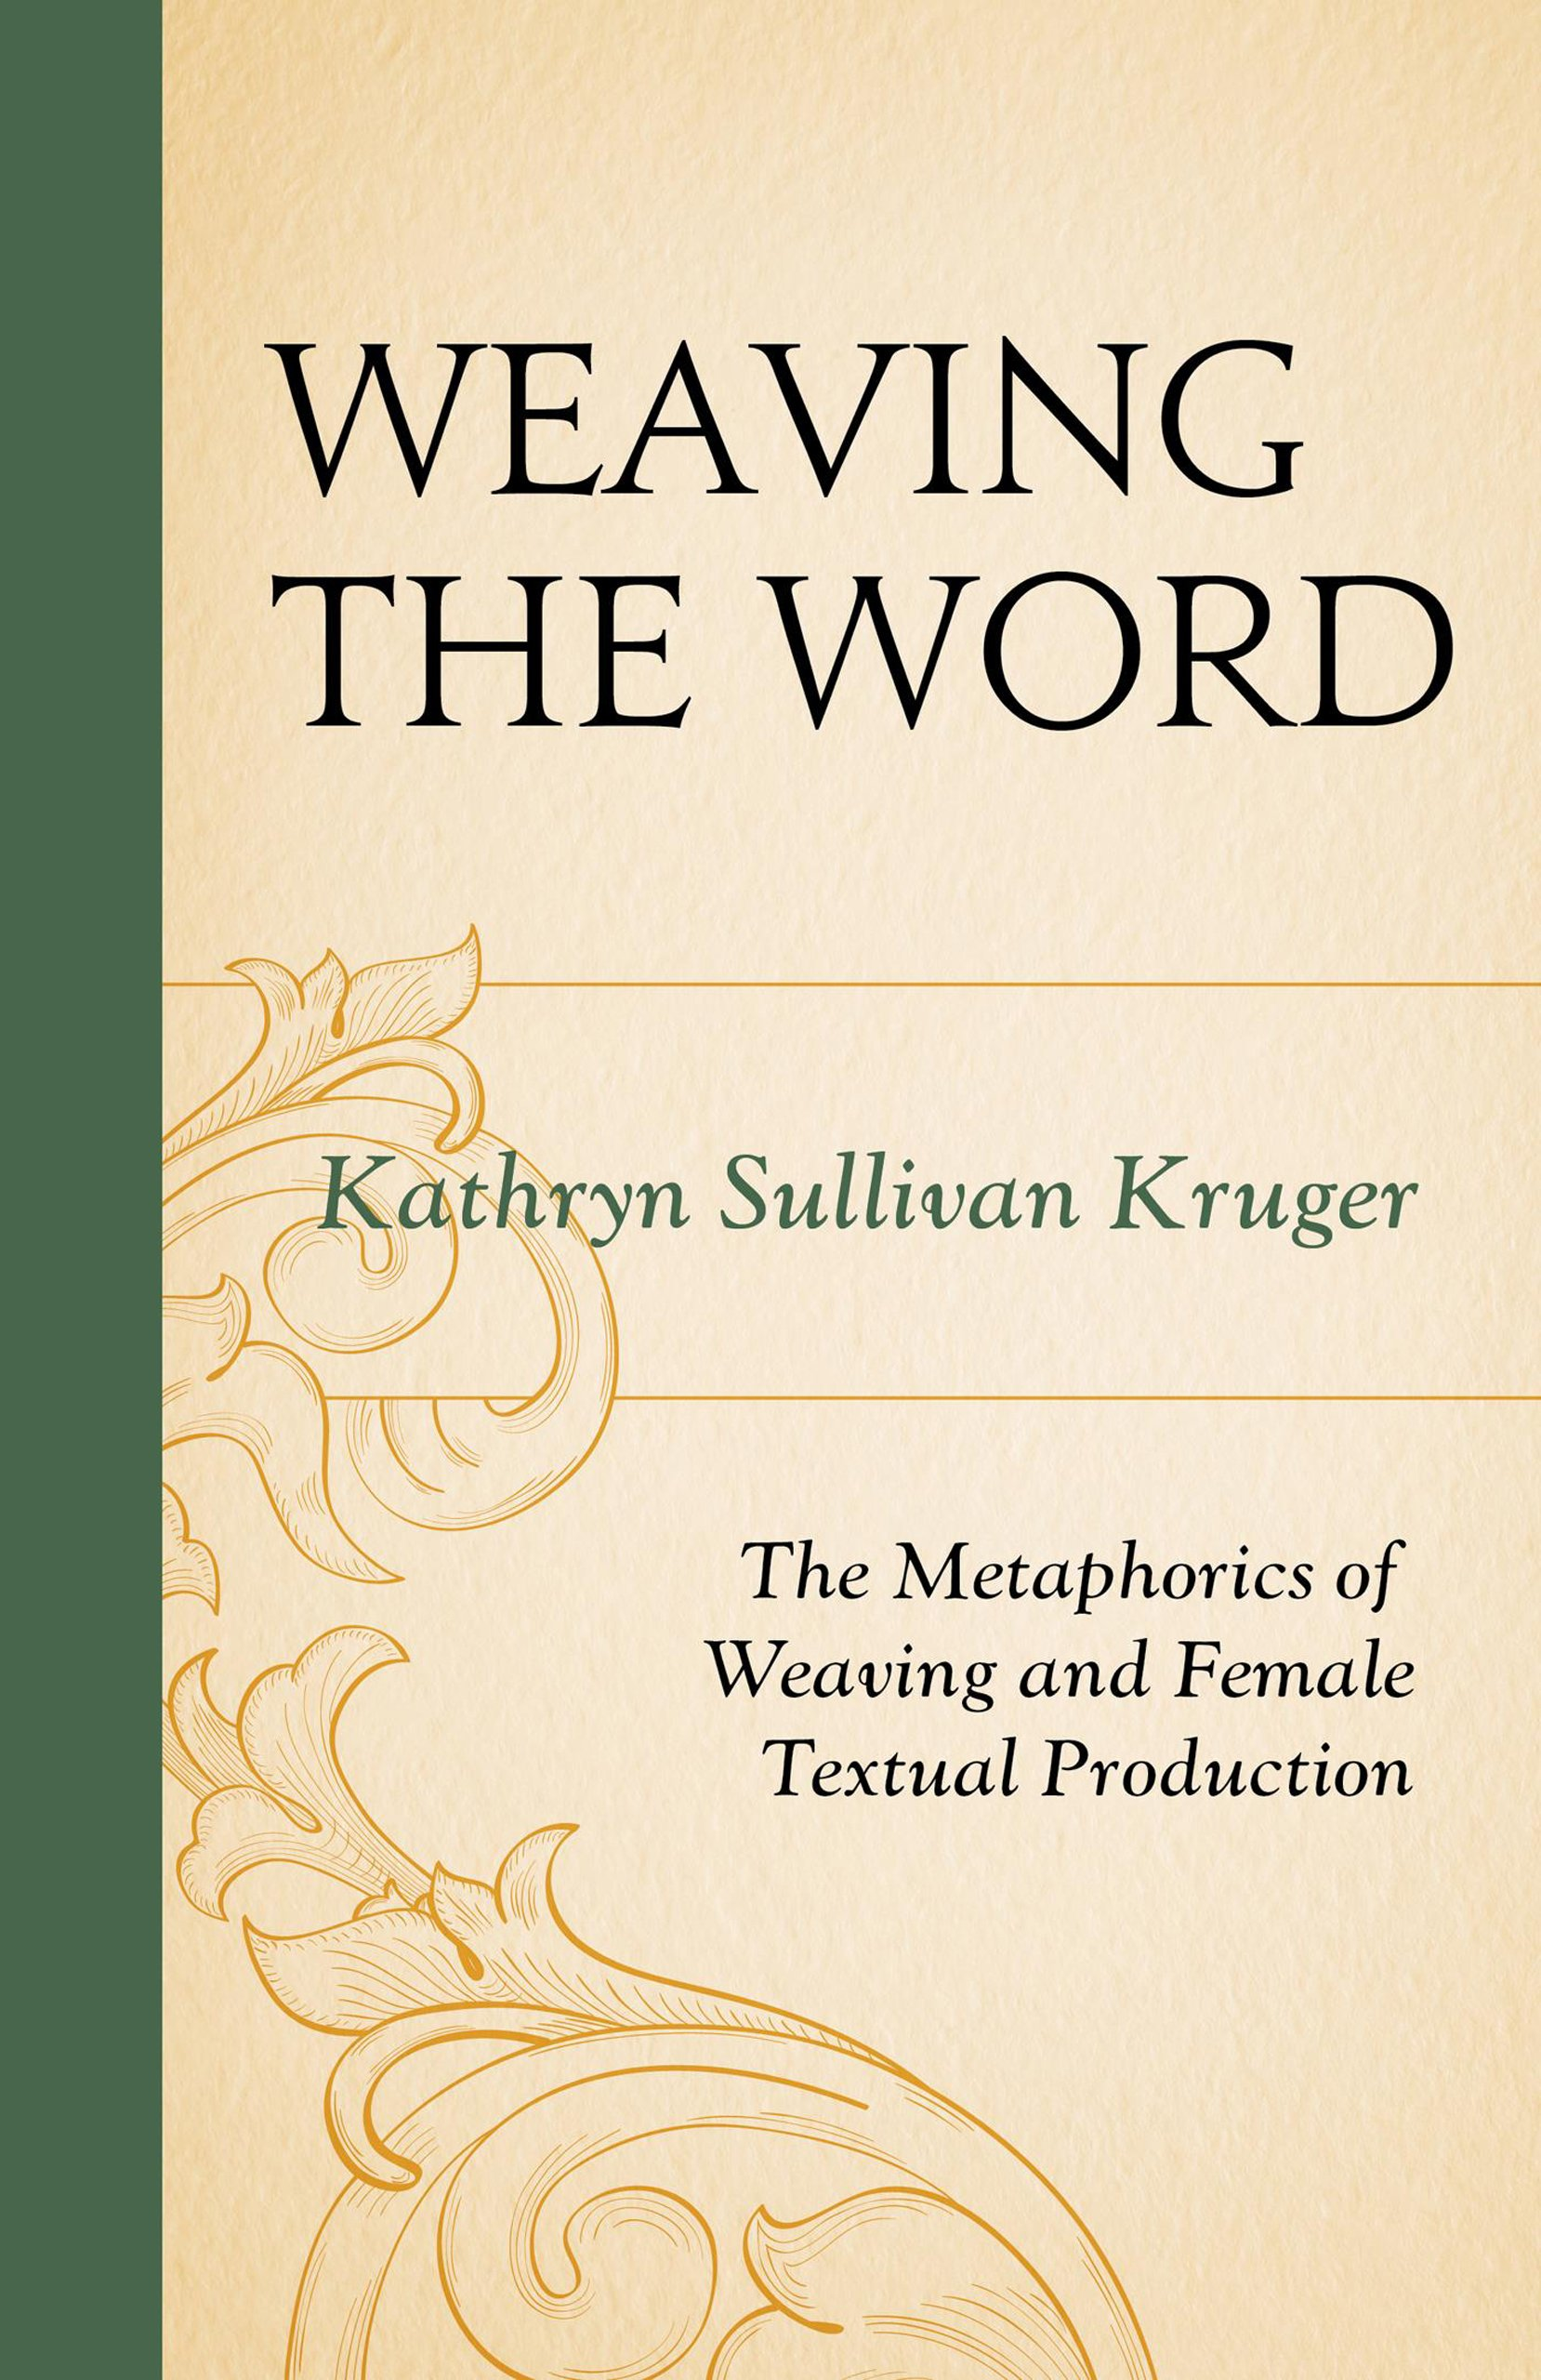 Weaving The Word: The Metaphorics of Weaving and Female Textual Production ePub fb2 ebook